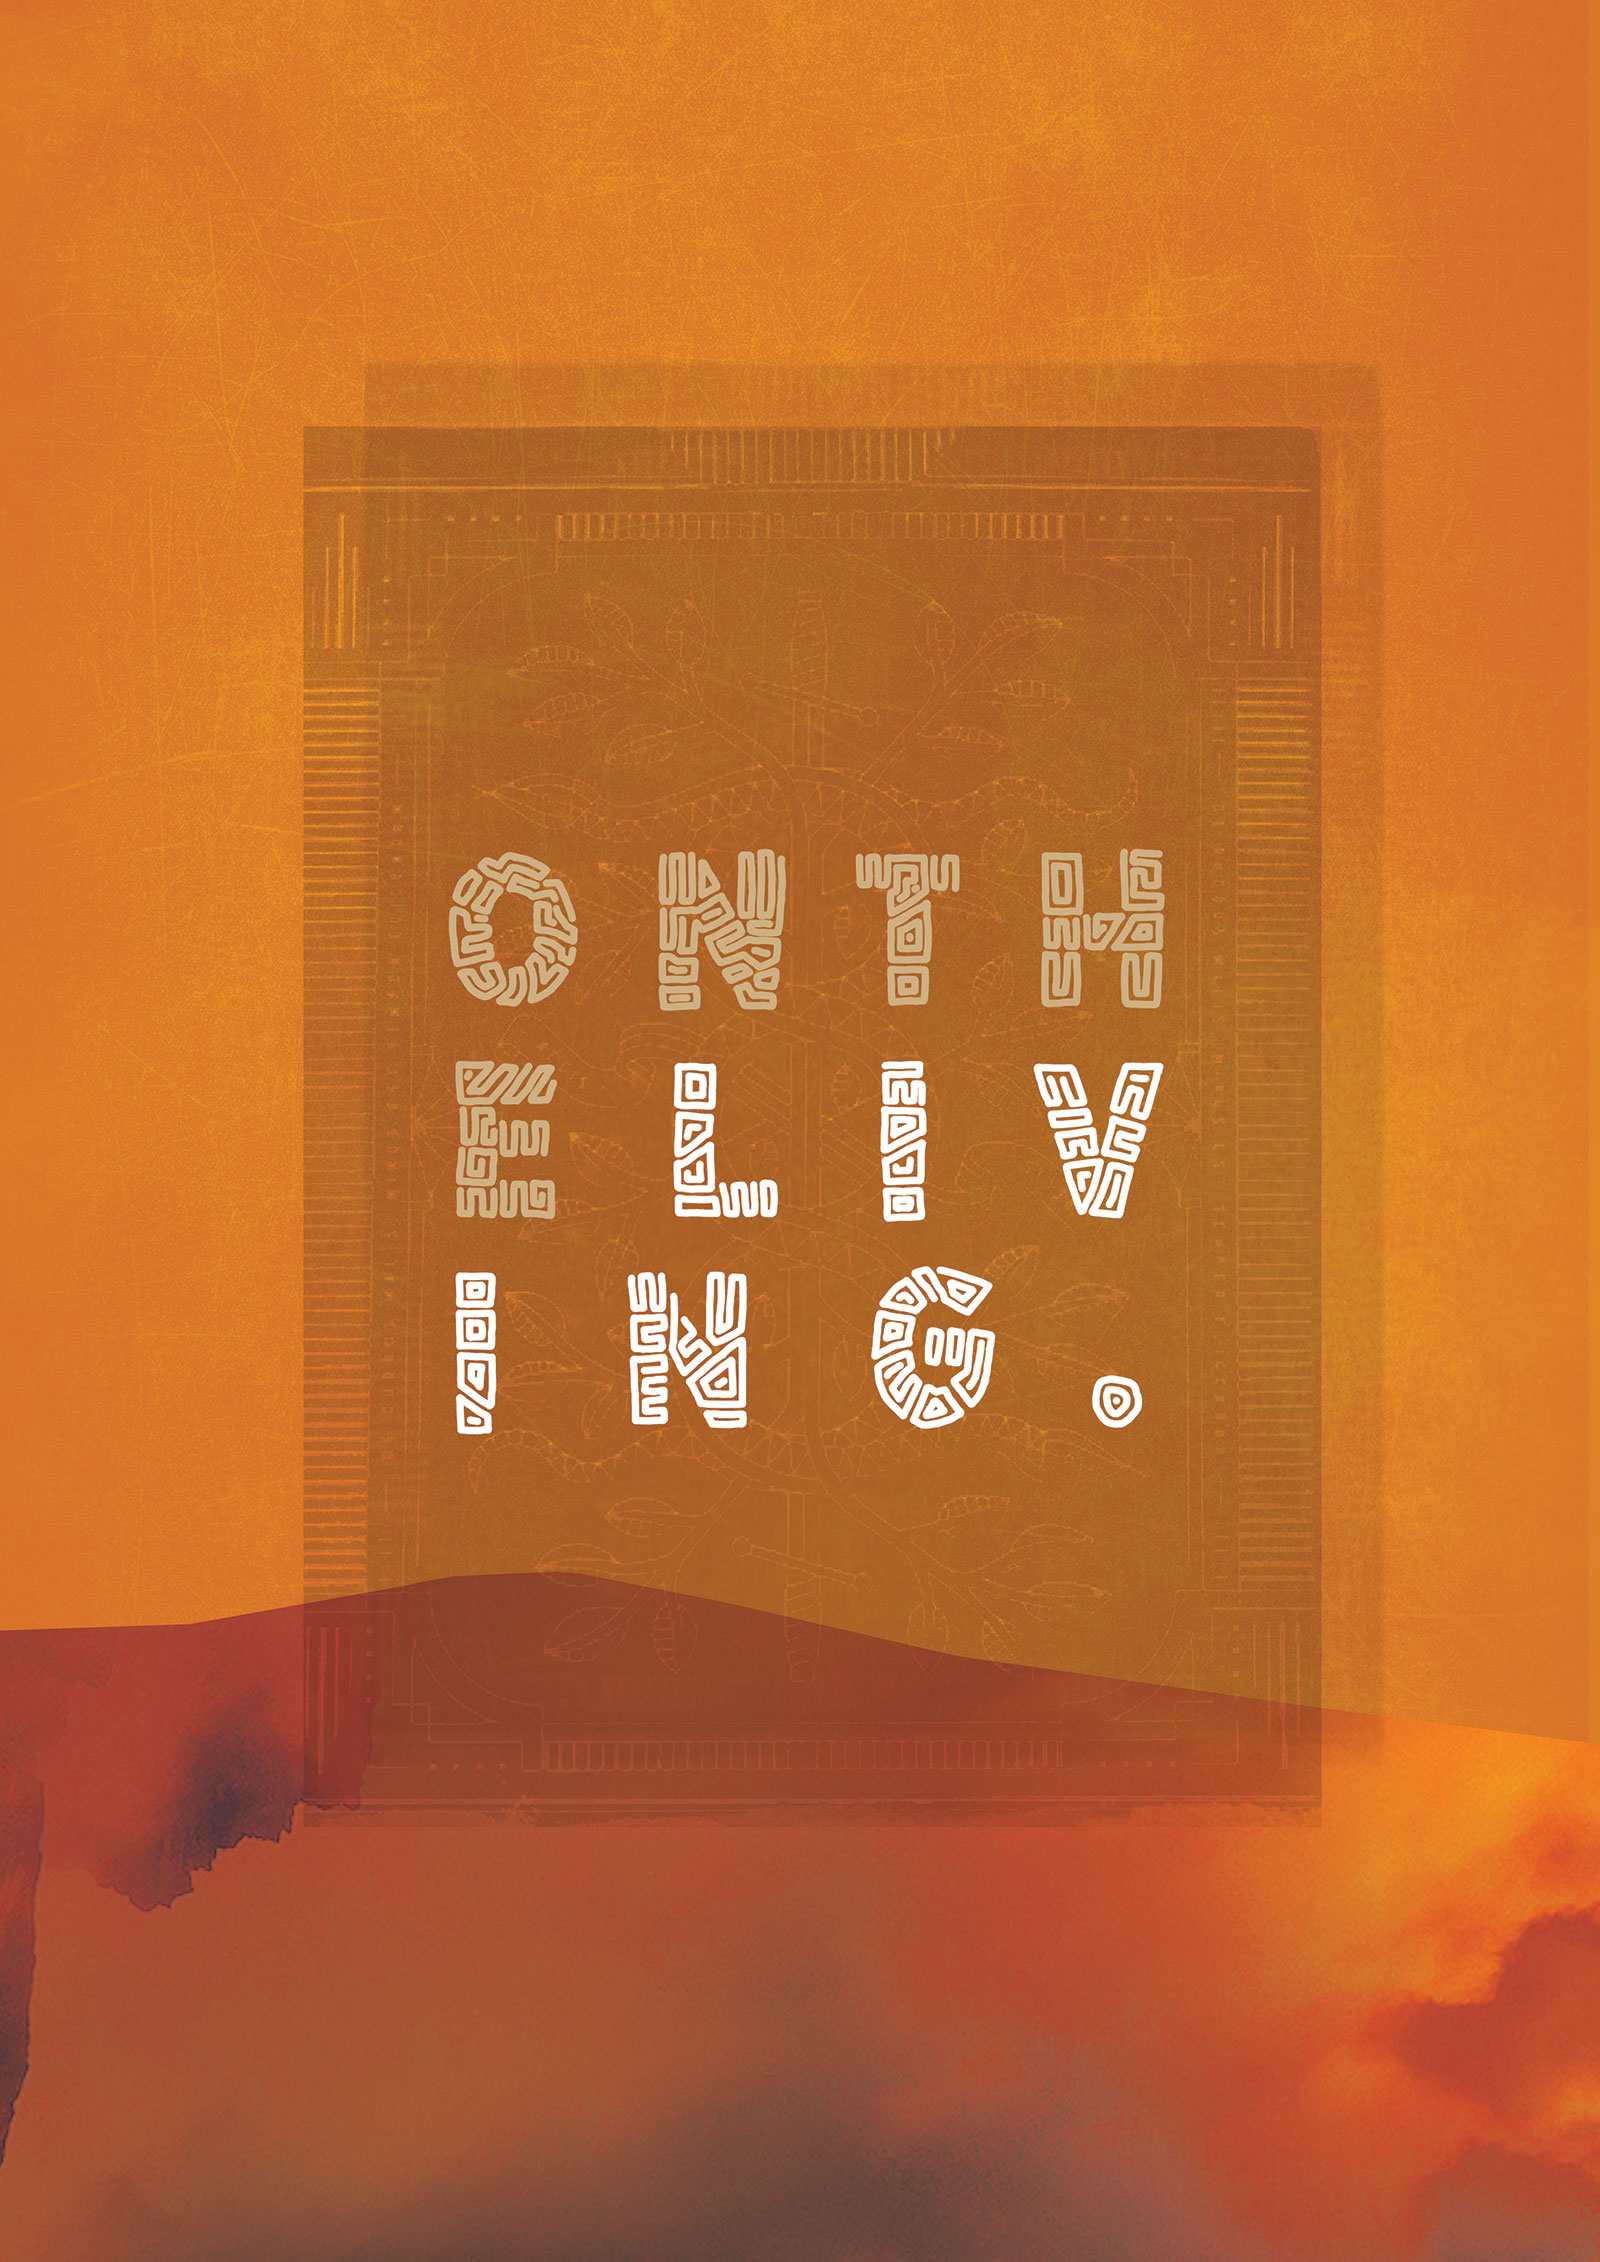 8ontheliving